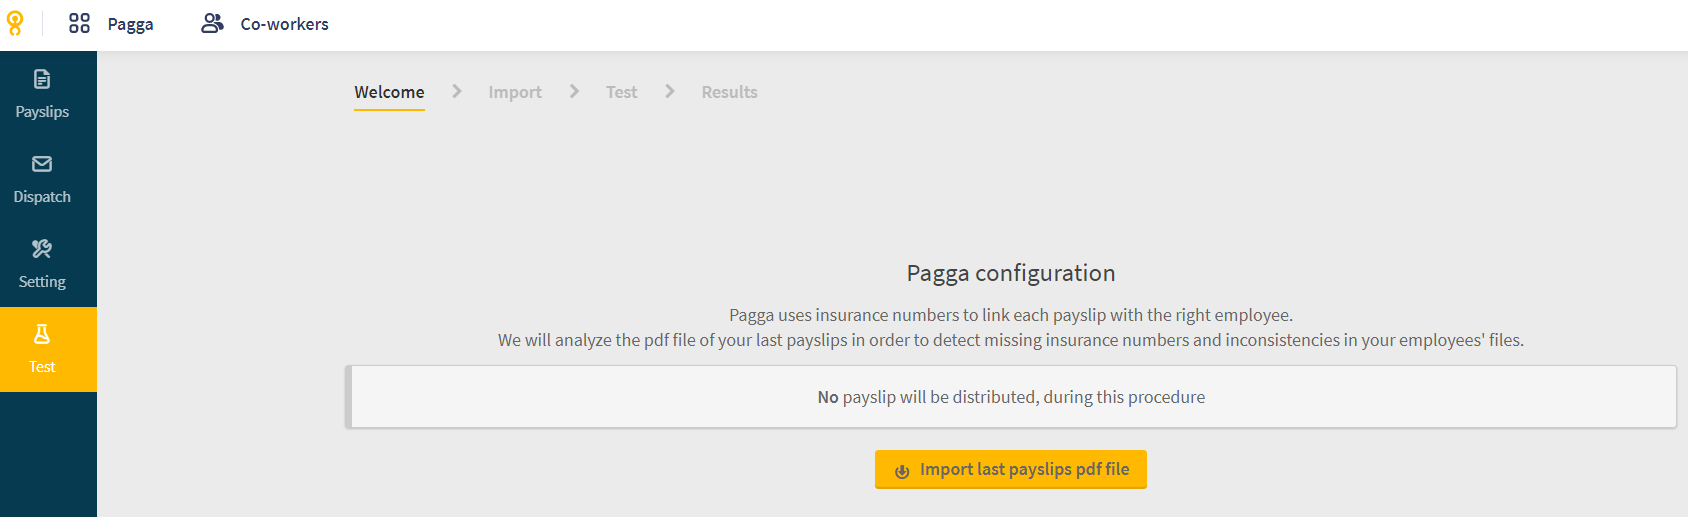 Pagga_-_Verifying_Employee_Insurance_Numbers_or_Codes.png